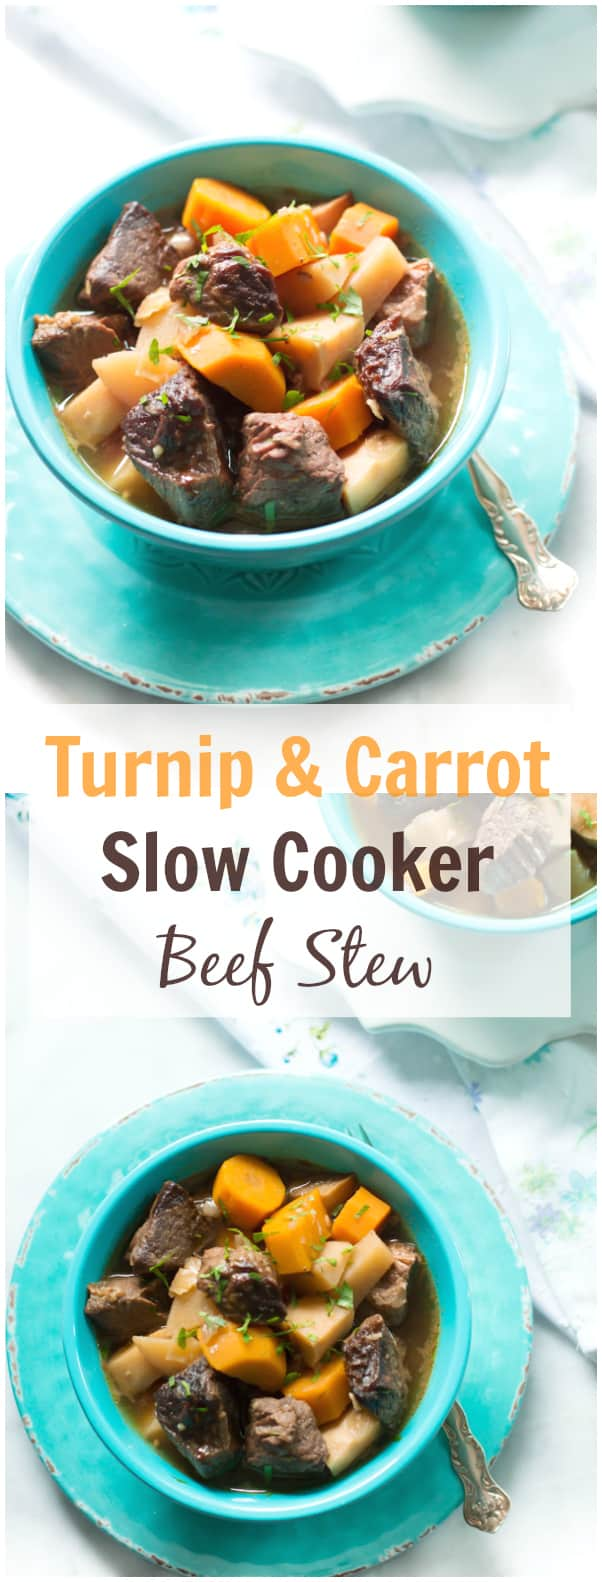 This is the perfect time of the year to load yourself up on hearty comfort foods like this delicious and healthy Turnip and Carrot Slow Cooker Beef Stew.